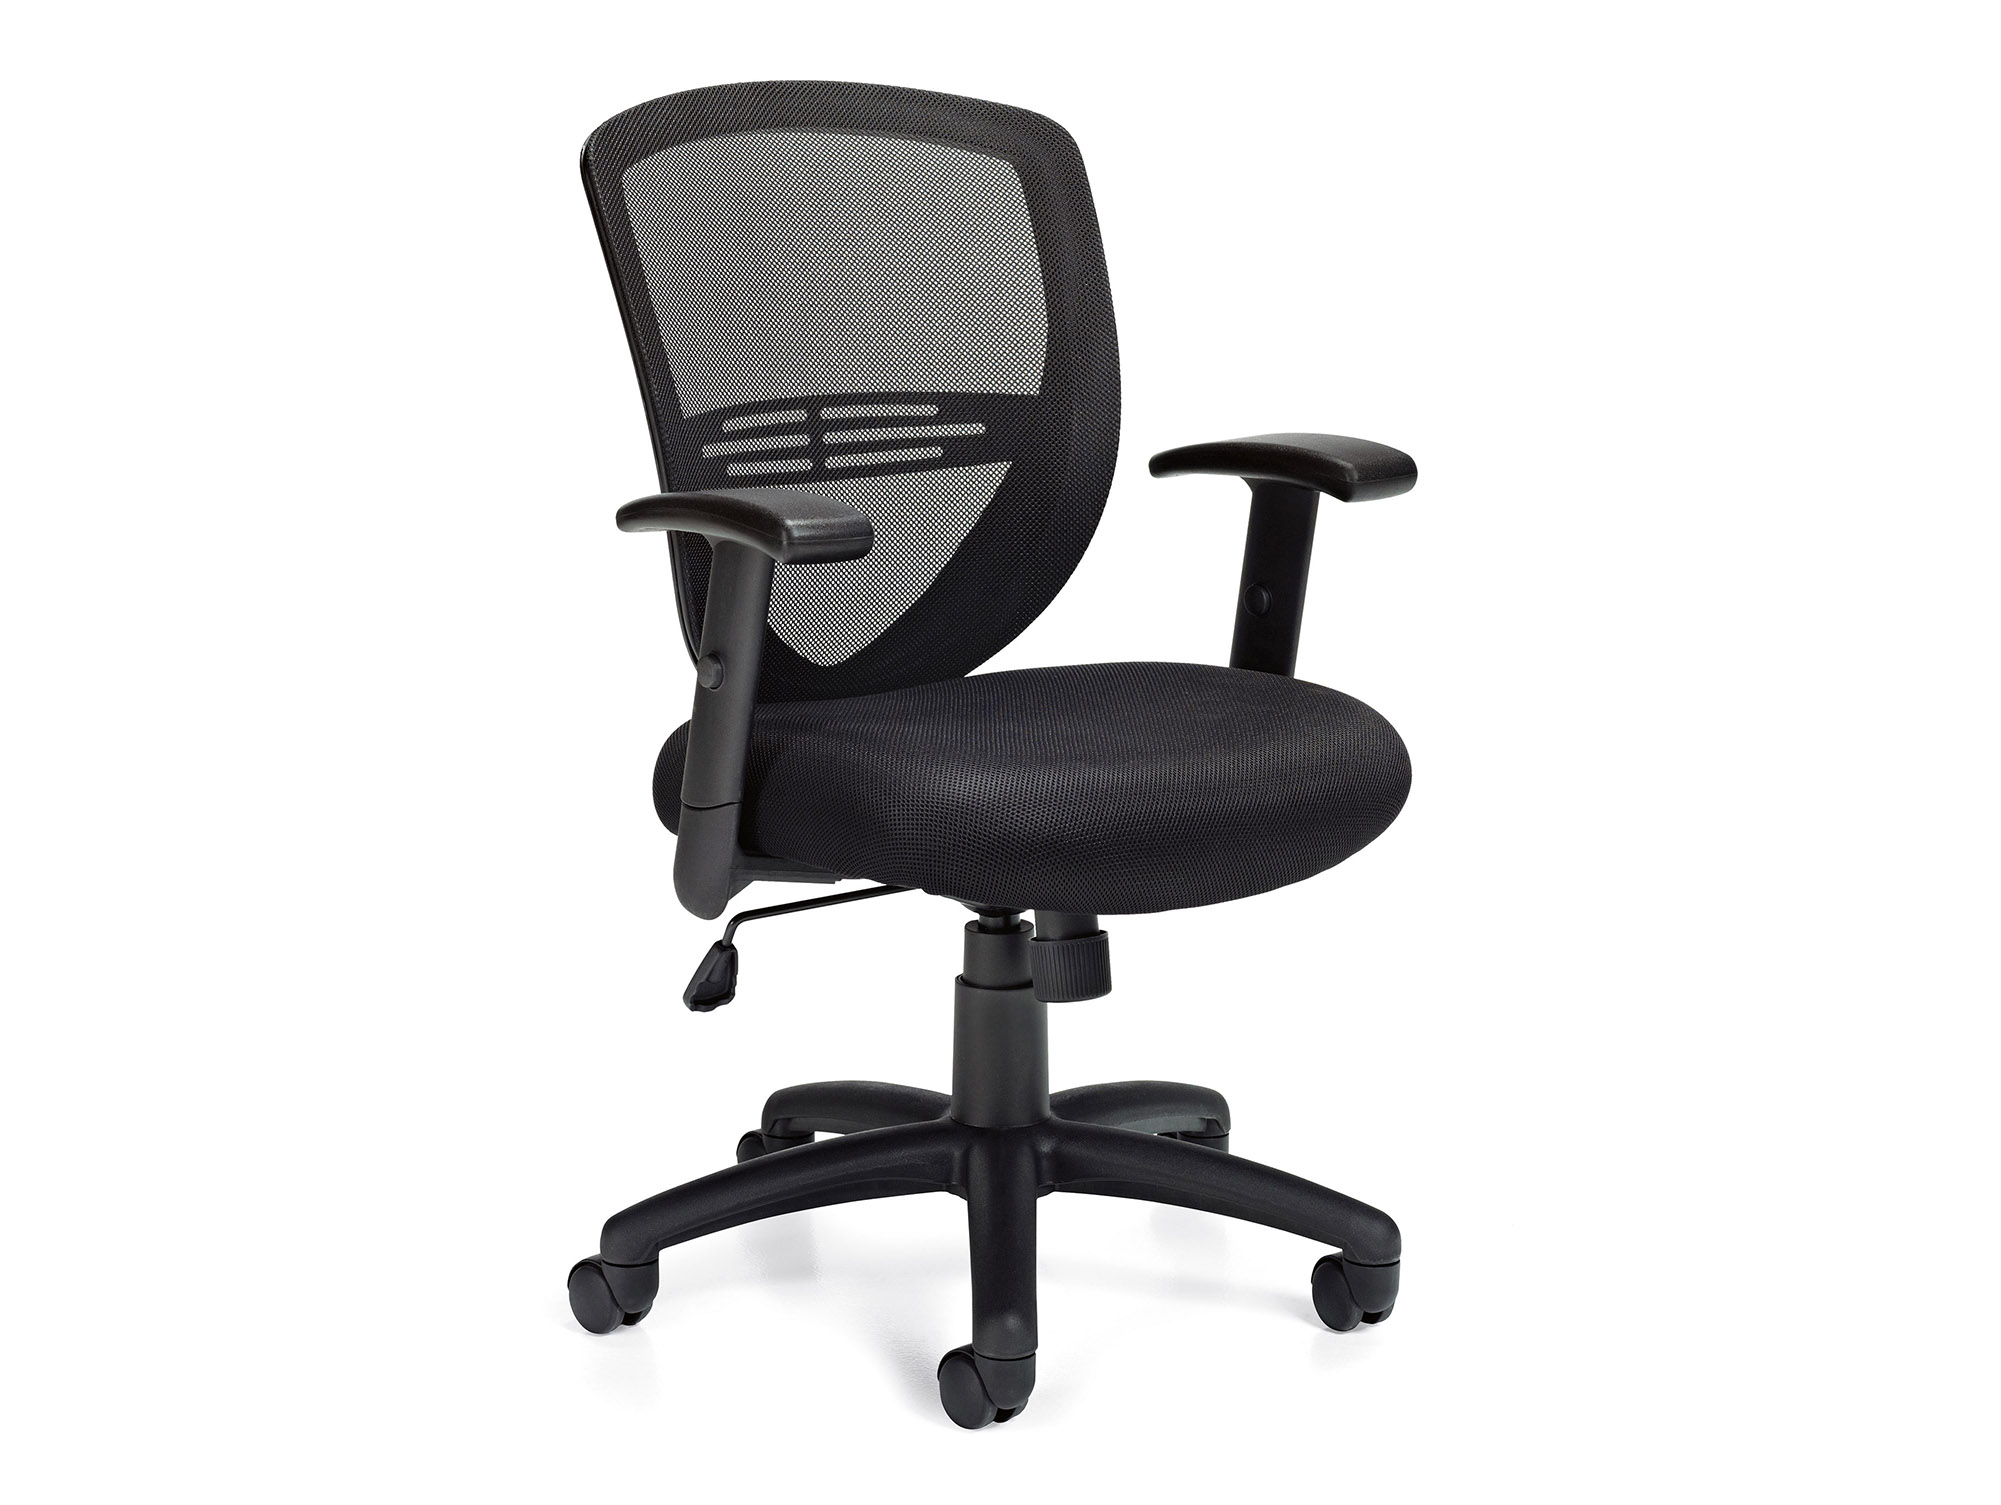 Mesh Desk Chair fice Task Chairs Chairs For fice